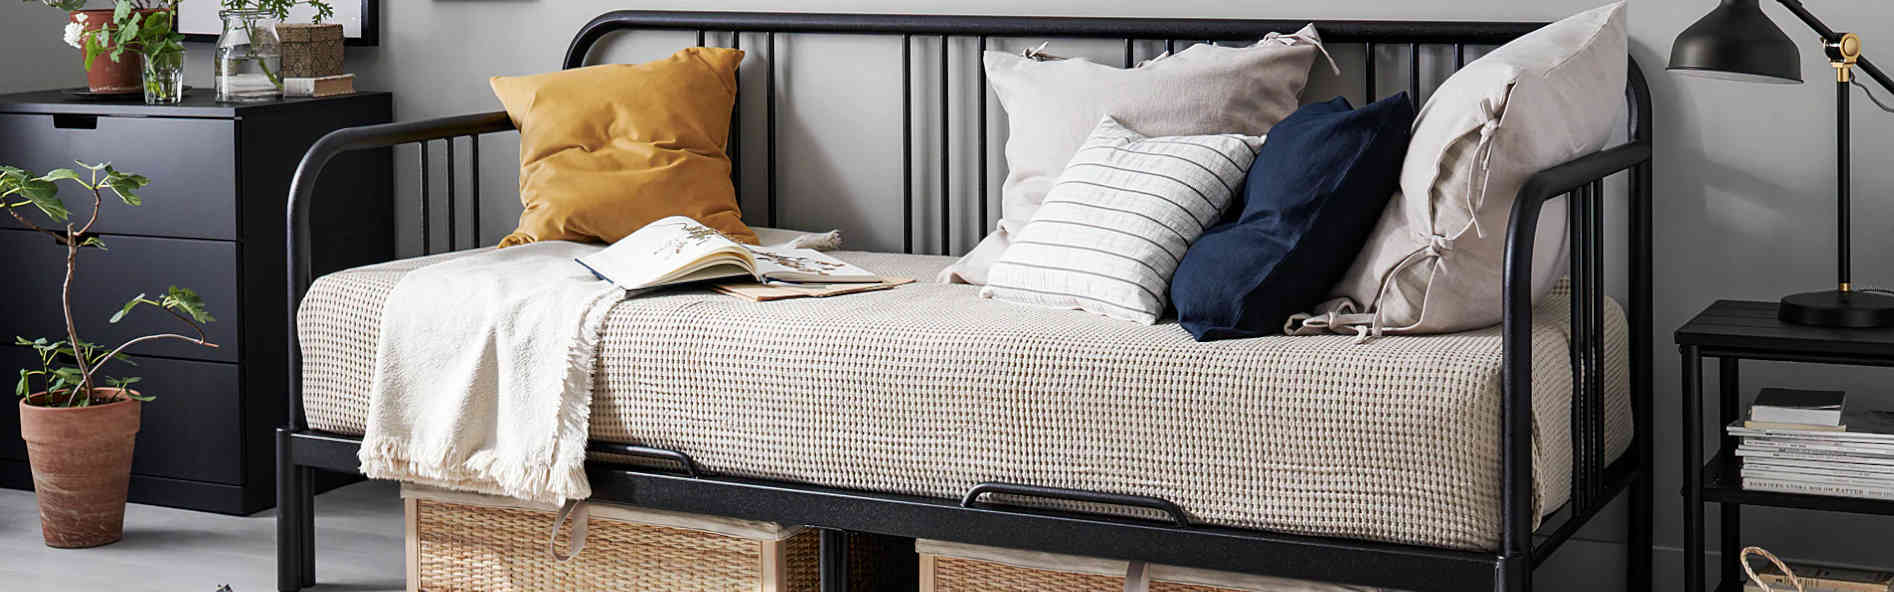 Best Ikea Daybeds 2021 Reviews Ranks Buy Or Avoid